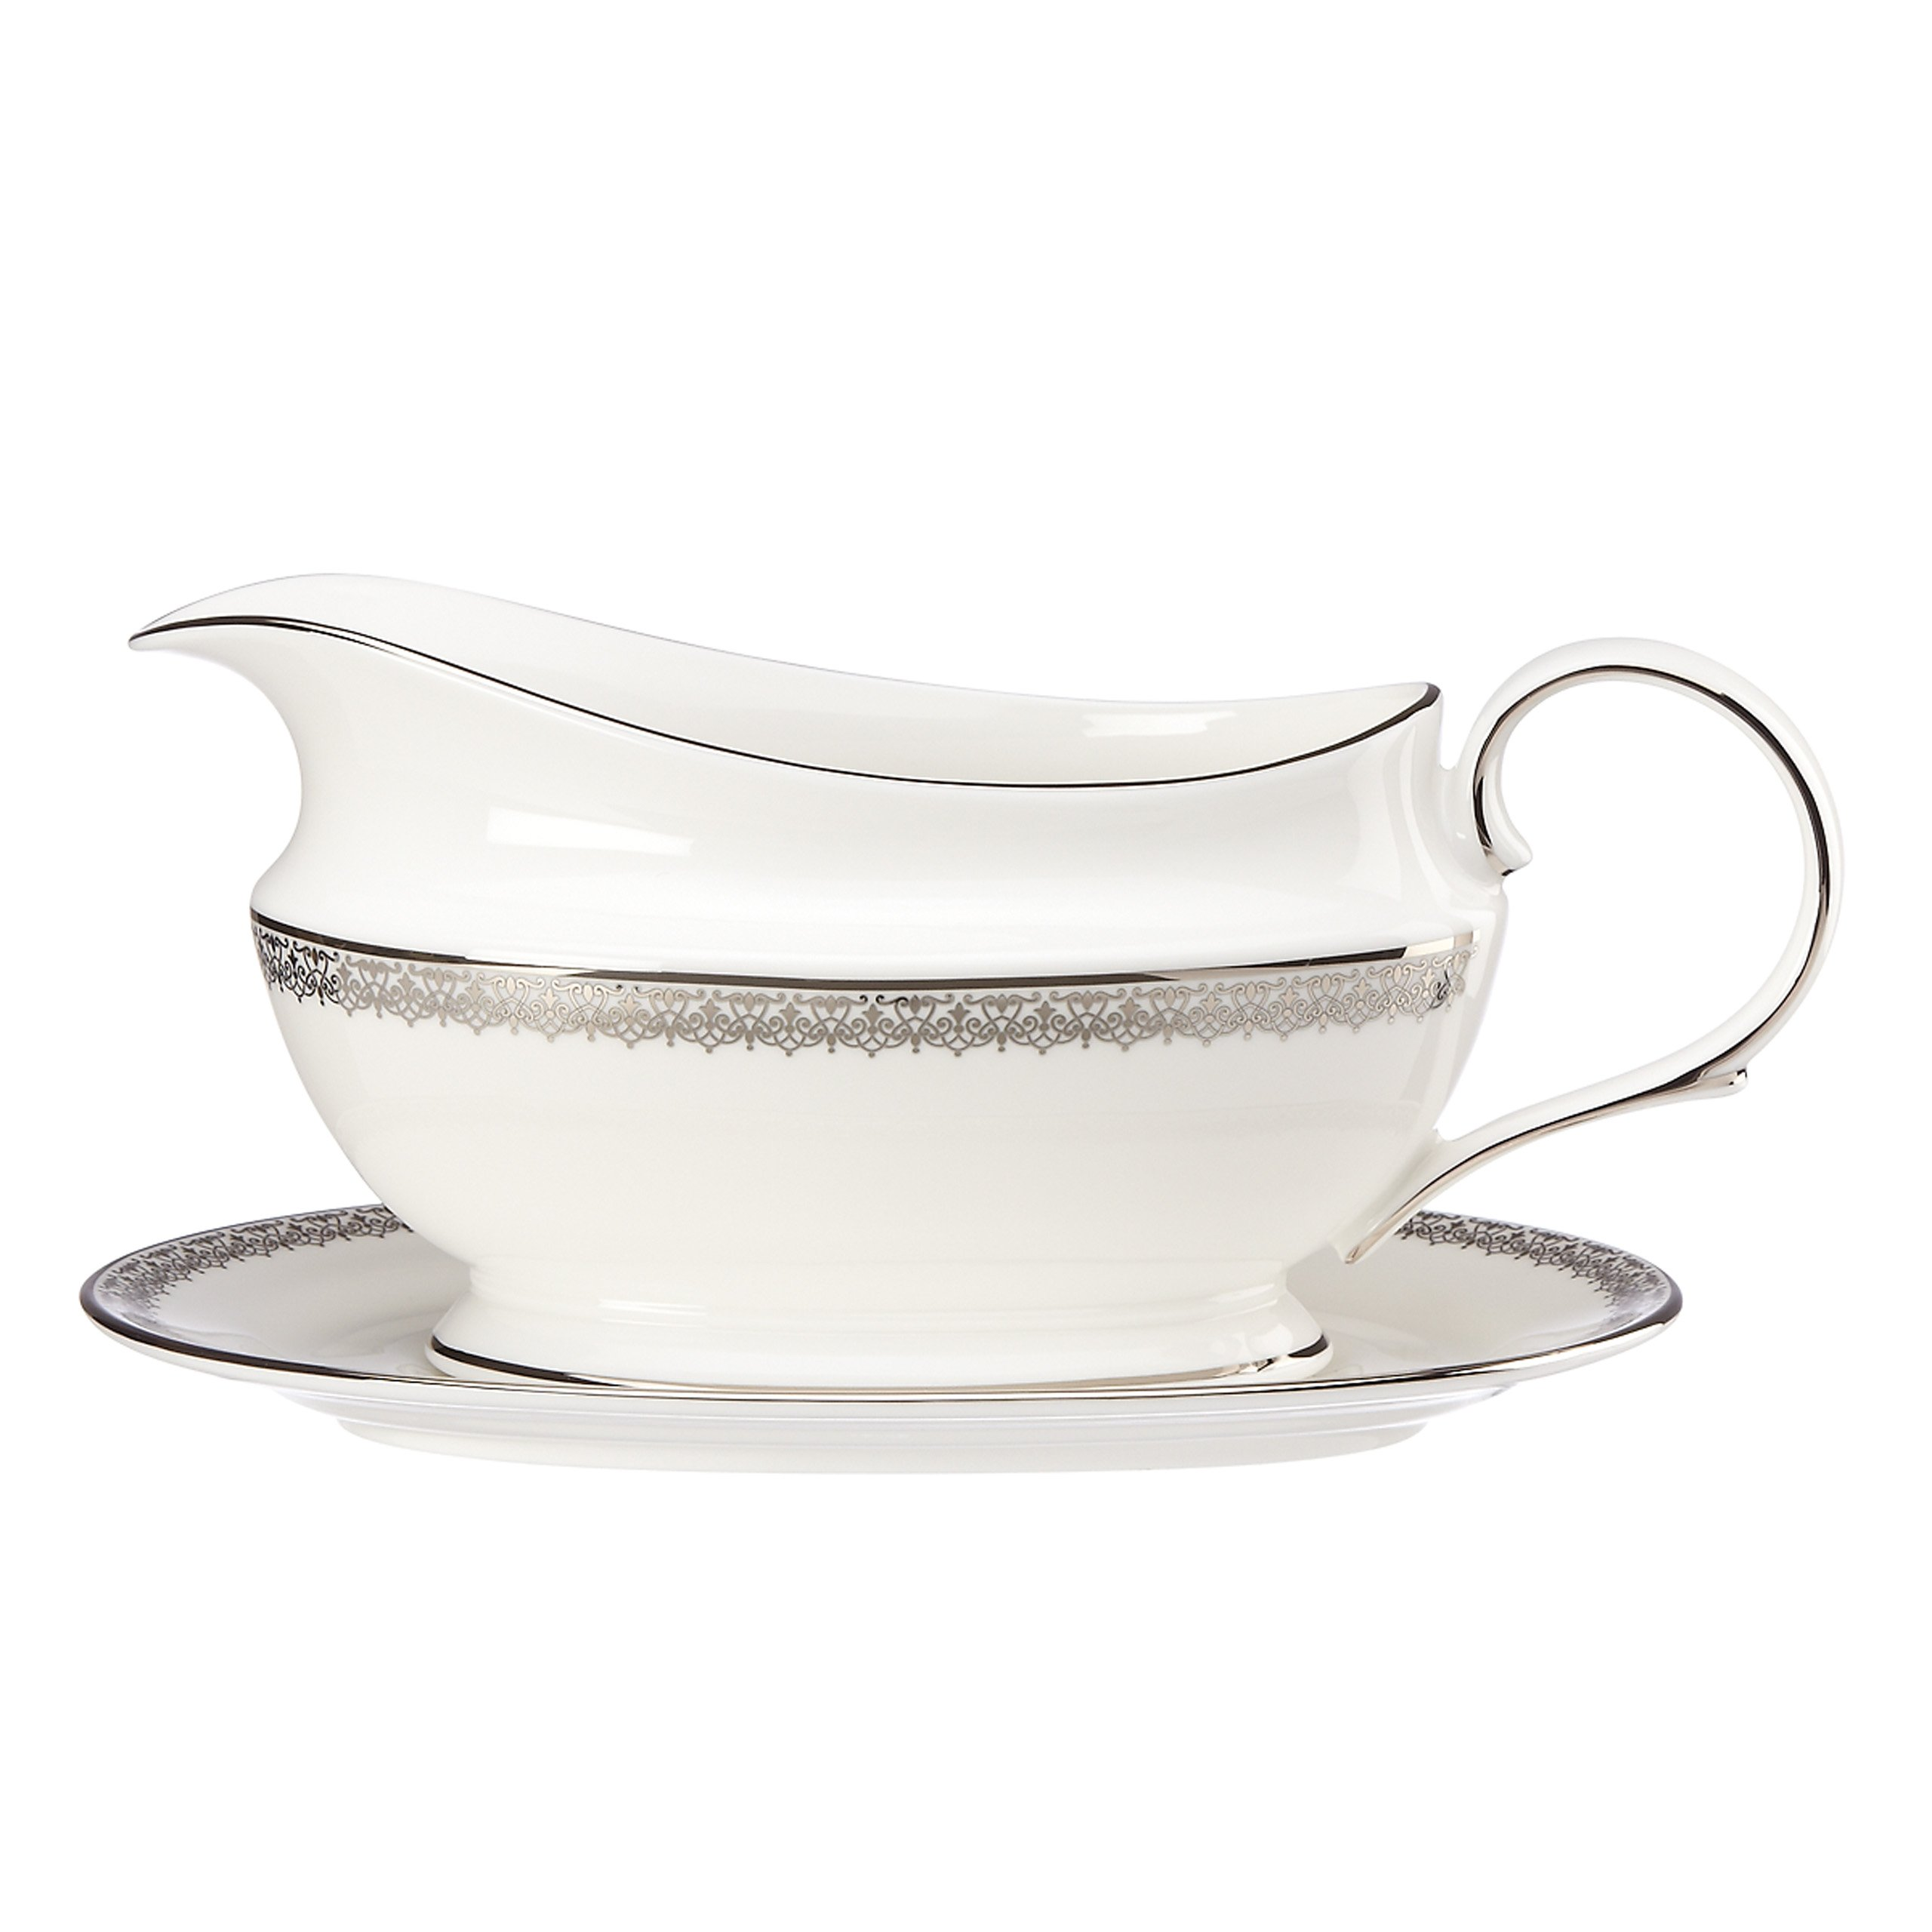 Lenox Lace Couture Sauce Boat and Stand, White